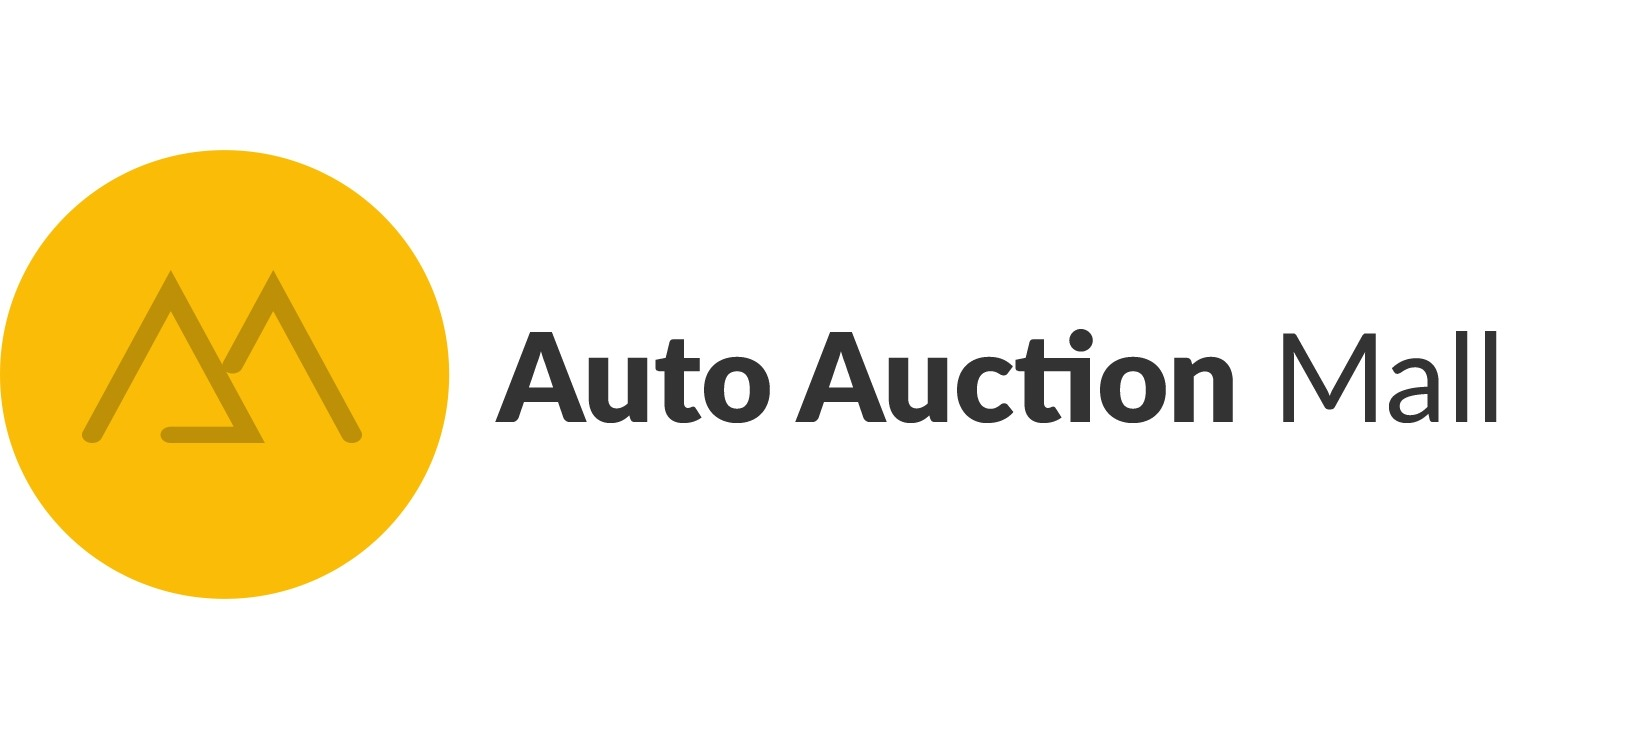 Auto Auction Mall coupon code